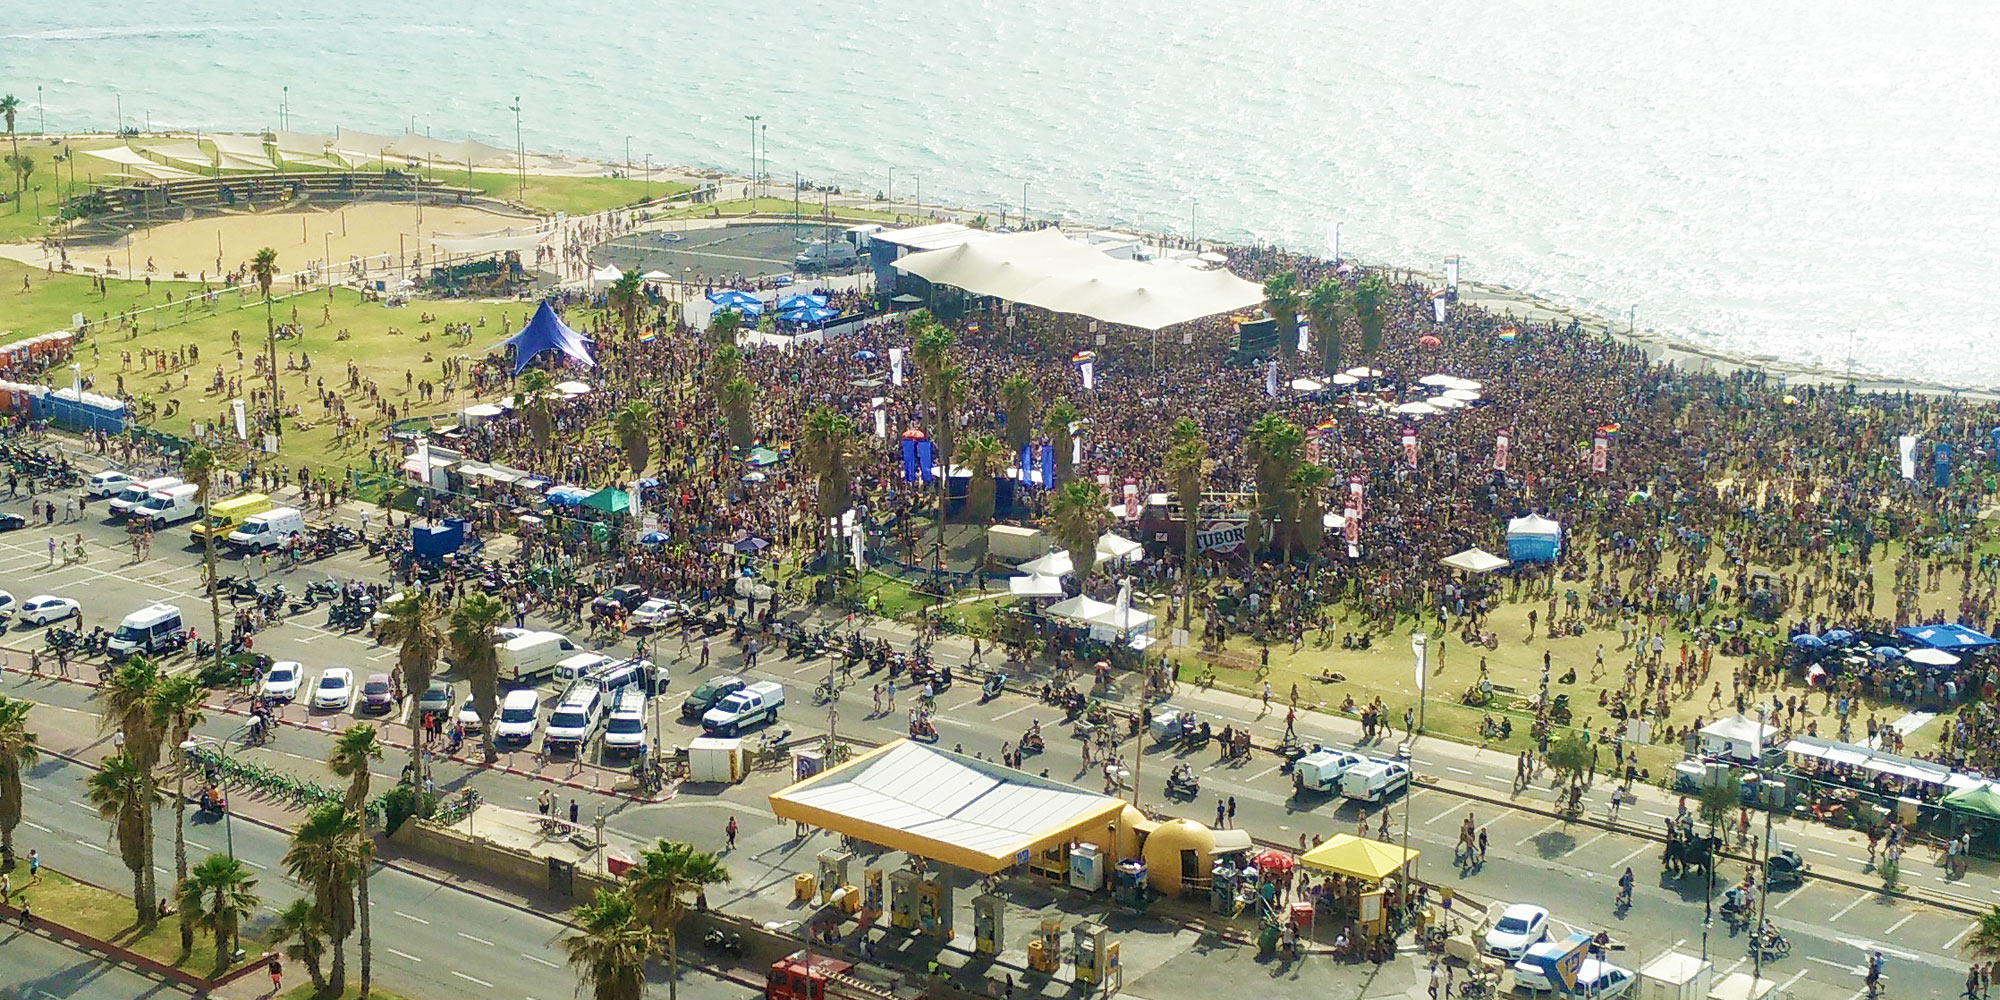 overview of the Charles Clore Park with roofed Pride stage and many thousands celebrating